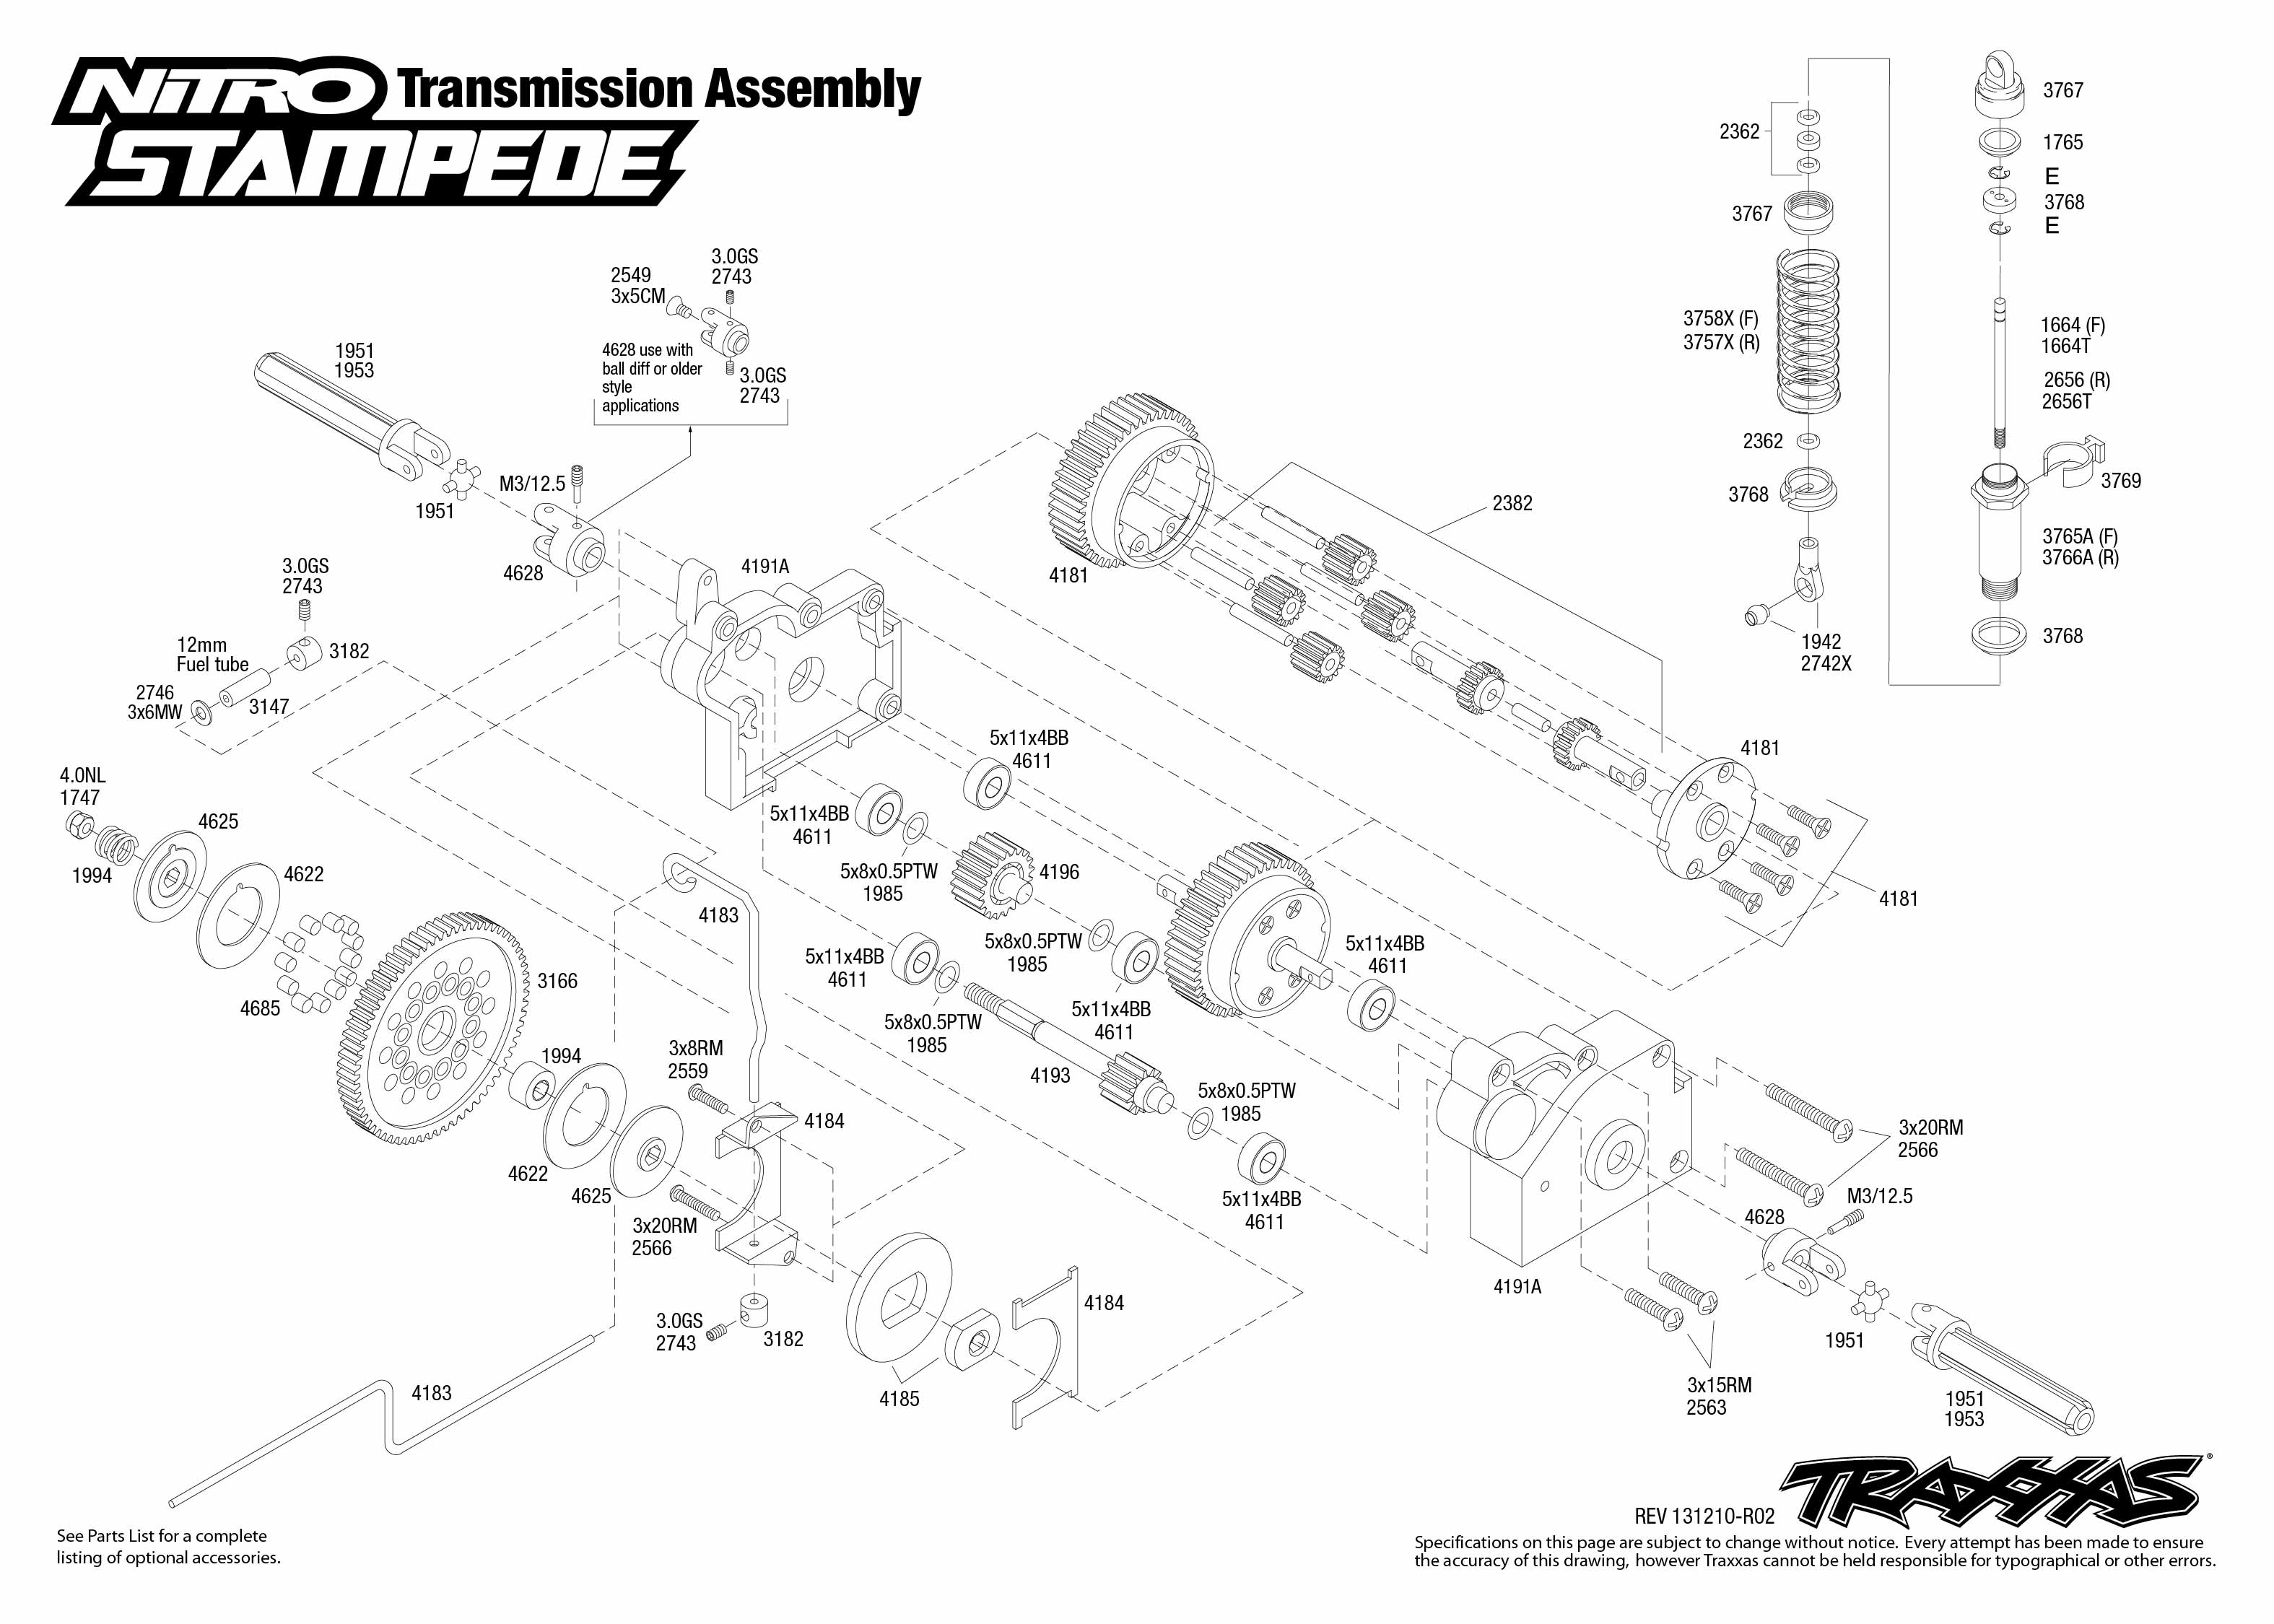 nitro stampede 41094 transmission assembly traxxas rh traxxas com traxxas stampede 4x4 parts diagram traxxas stampede 4x4 parts diagram